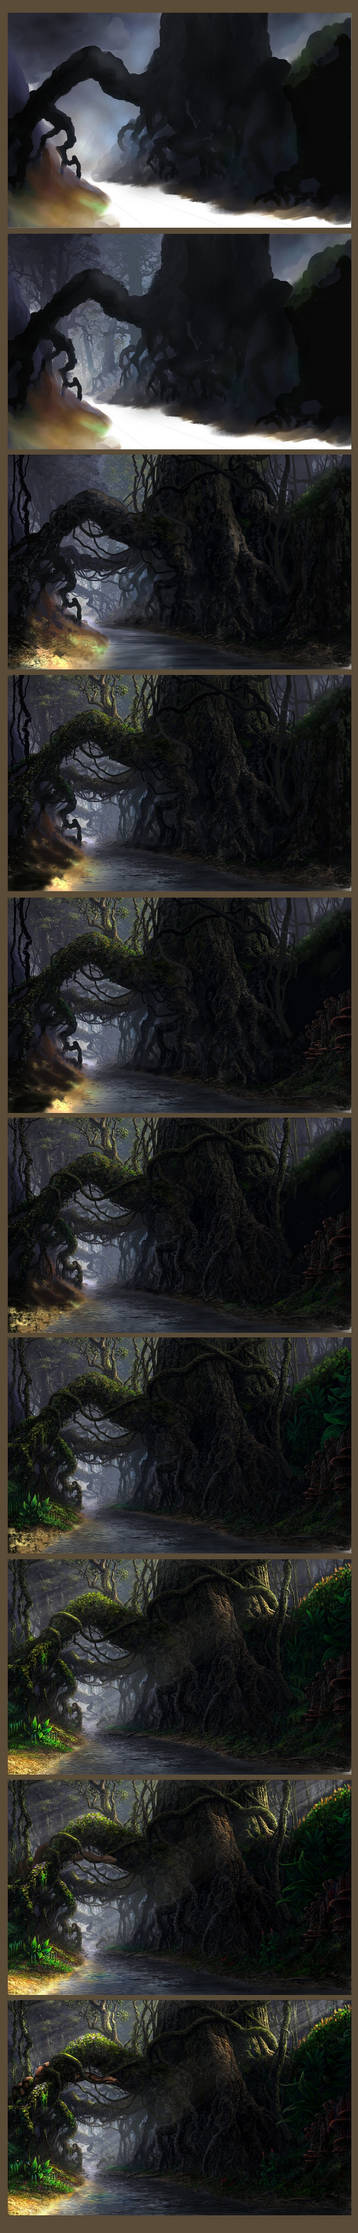 Roots - step by step